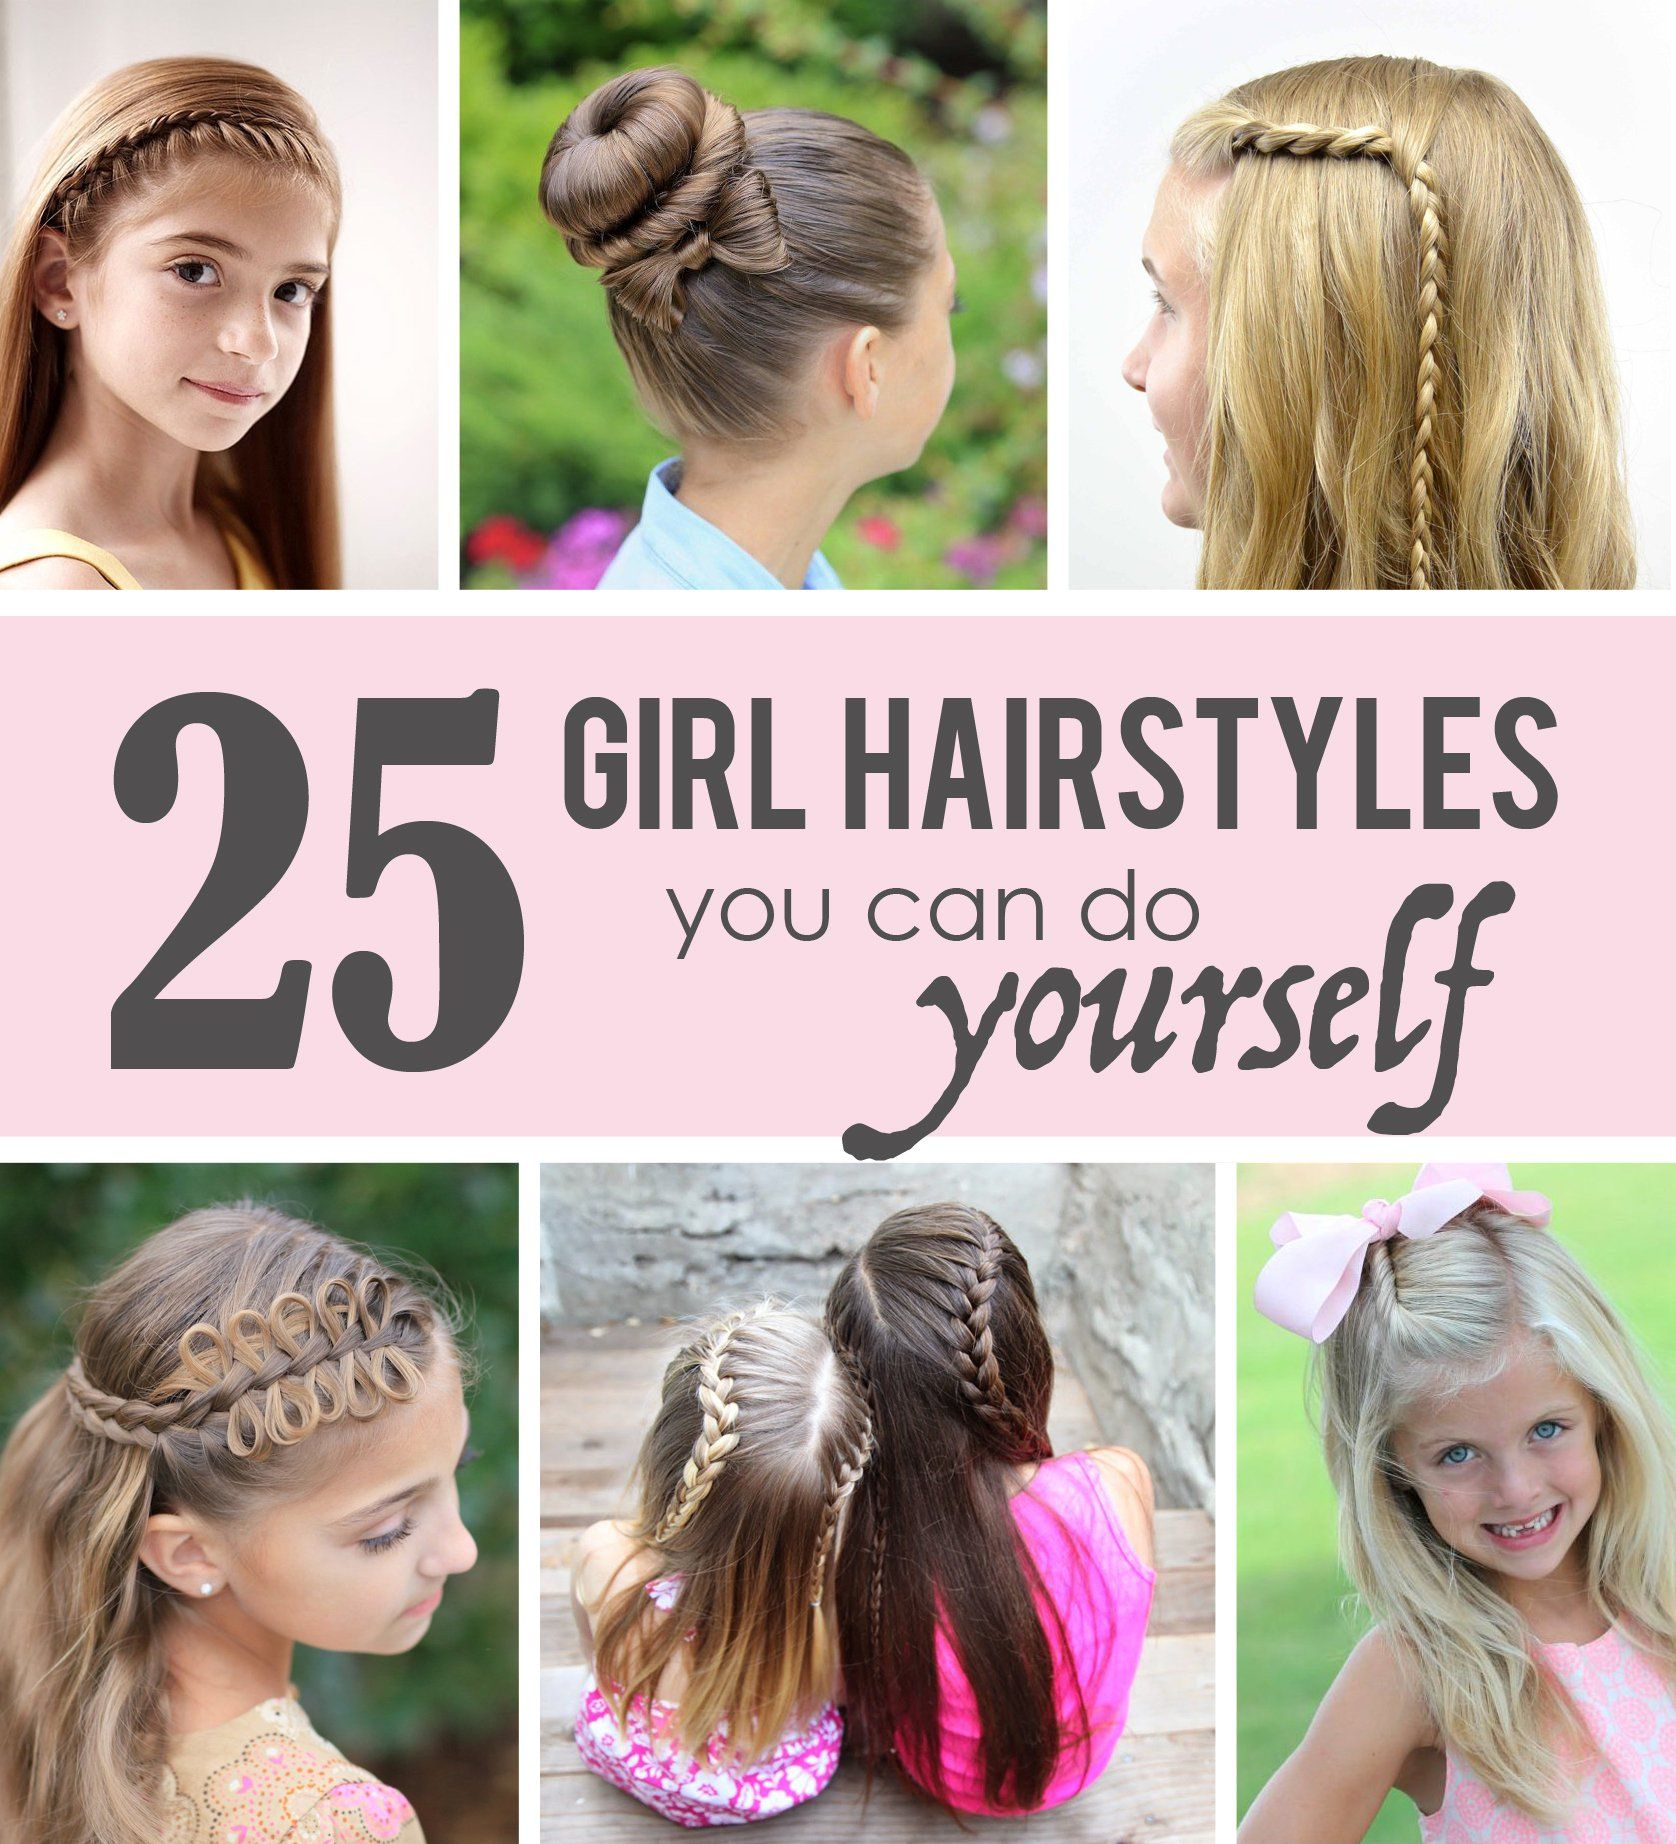 25 Little Girl Hairstyles...you can do YOURSELF! | Girl hairstyles ...